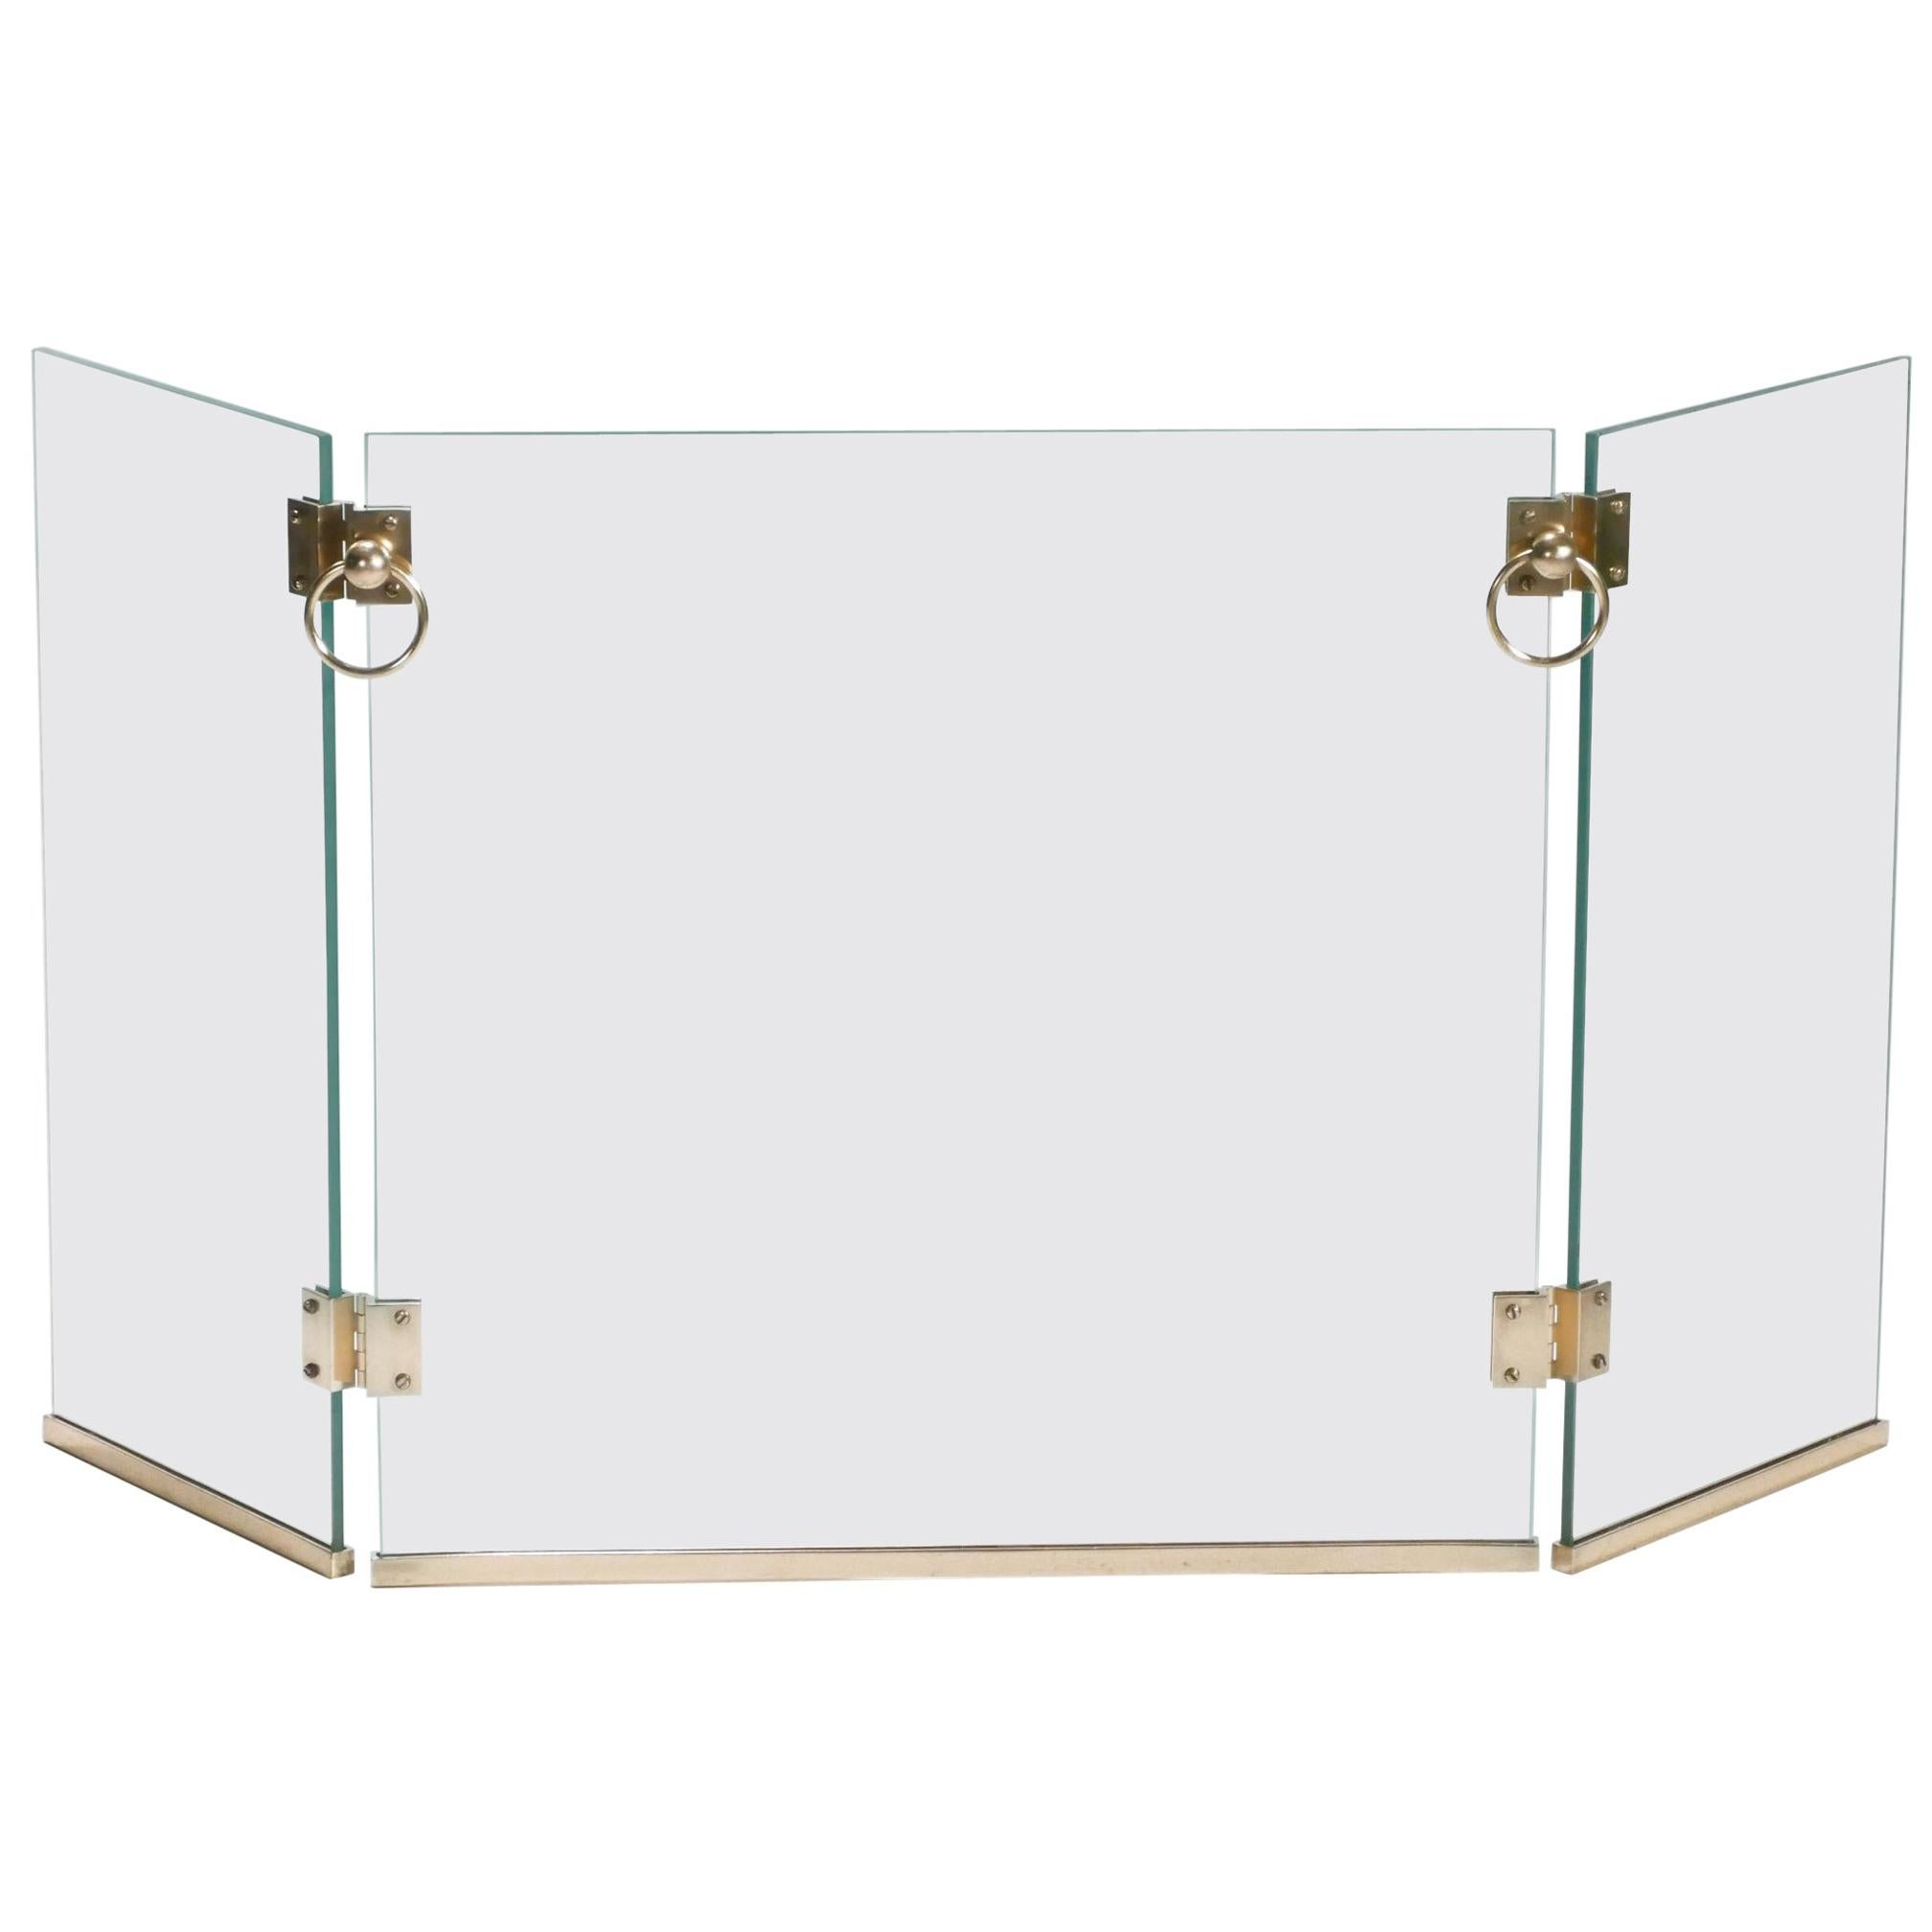 Rare Brass Fire Screen by Jacques Adnet, 1940s